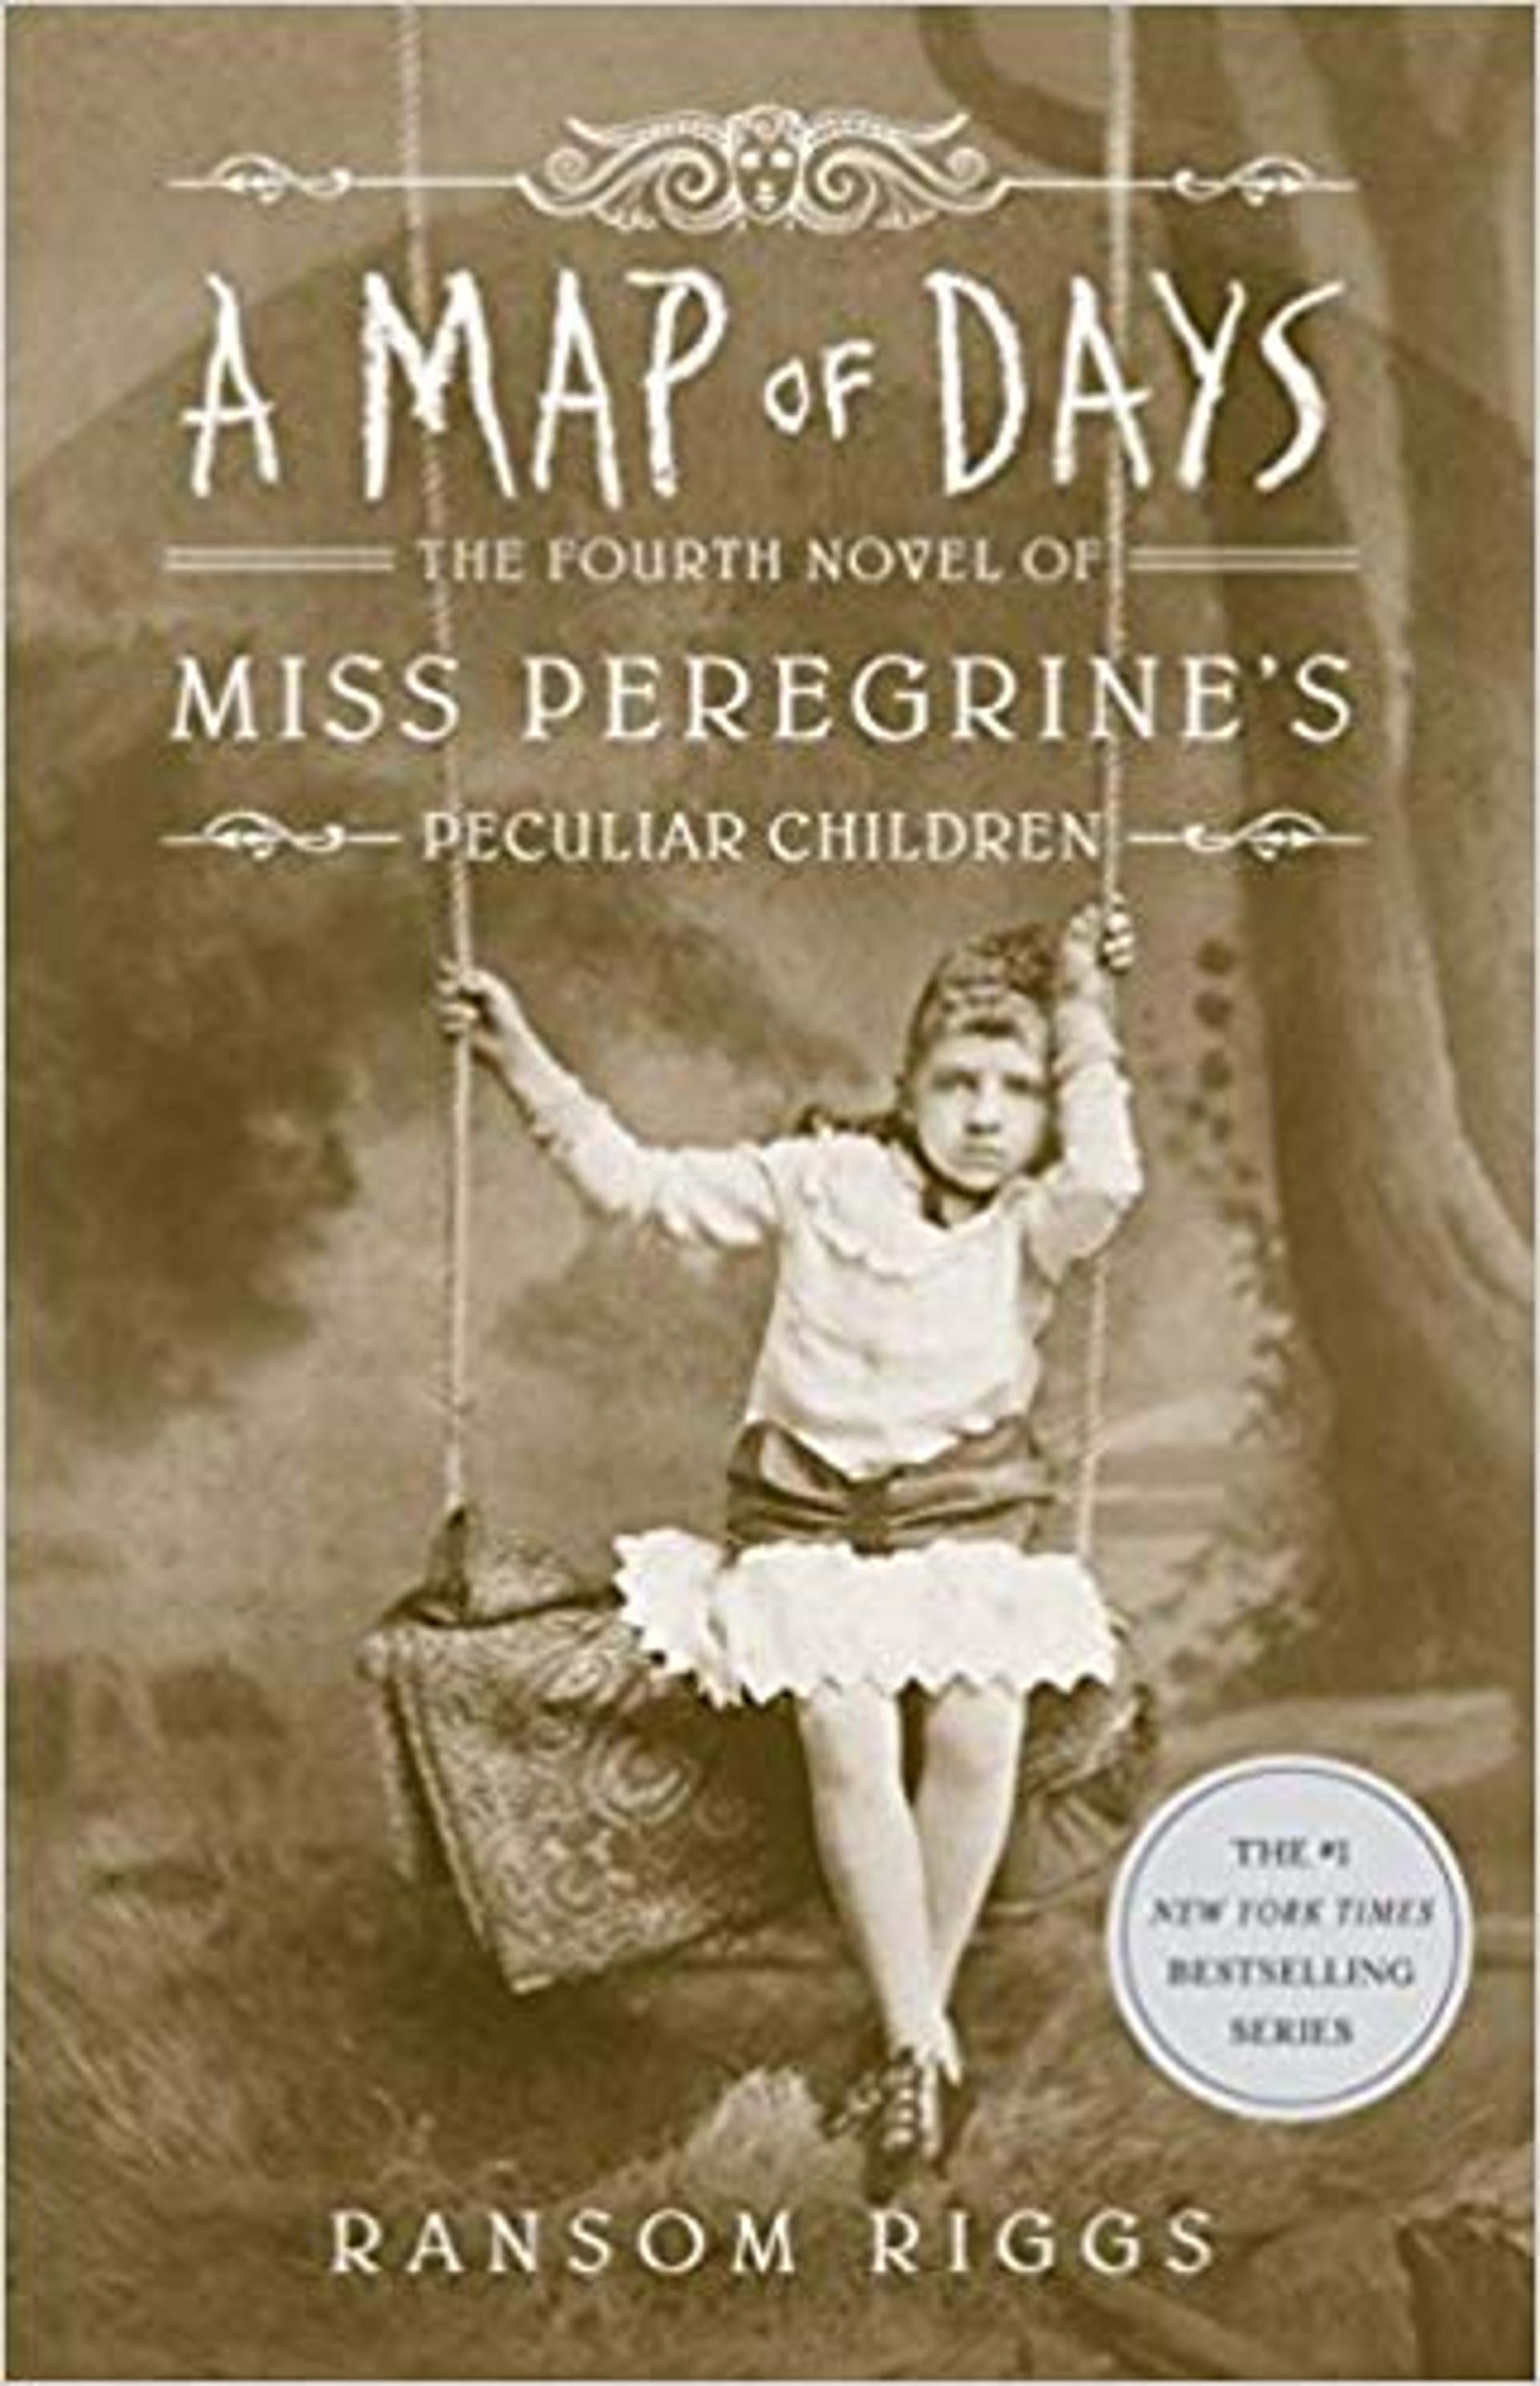 A Map of Days, the fourth novel of Miss Peregrine's Peculiar Children, by Ransom Riggs